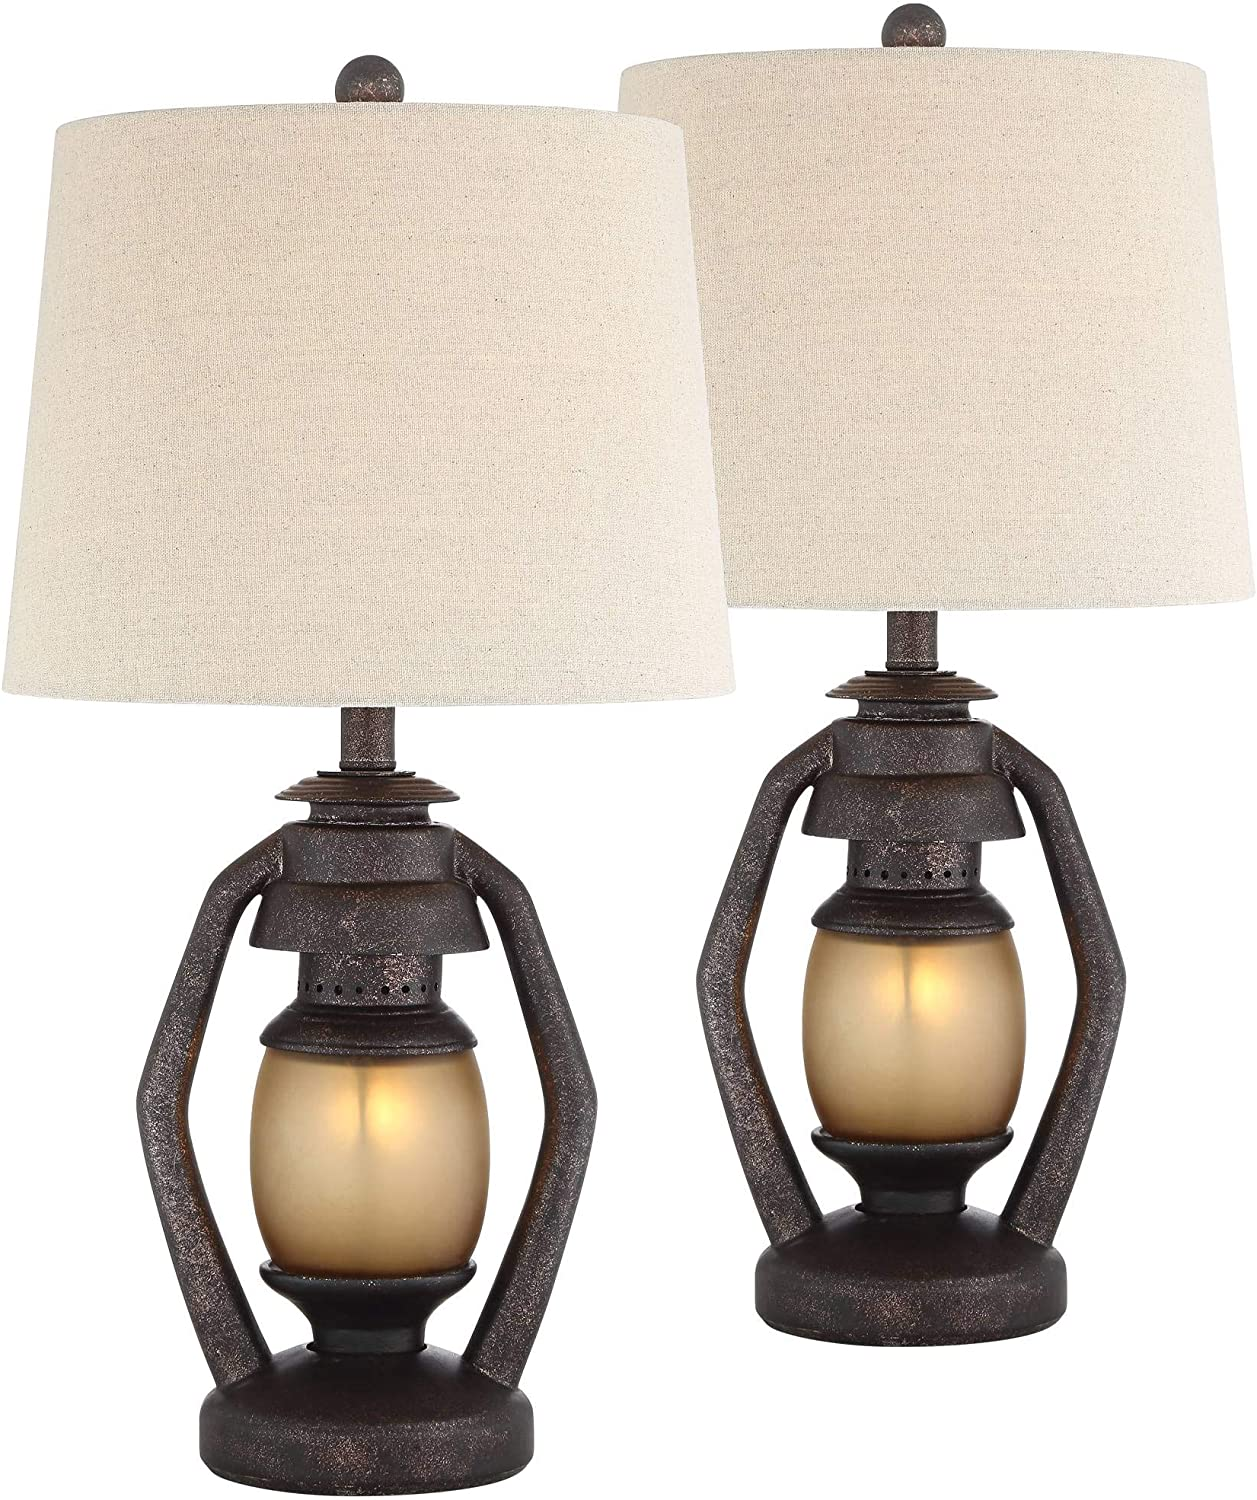 Horace Rustic Farmhouse Table Lamps Set of 2 with Nightlight Miner Lantern Brown Oatmeal Tapered Drum Shade for Living Room Bedroom Bedside Nightstand Office Family - Franklin Iron Works